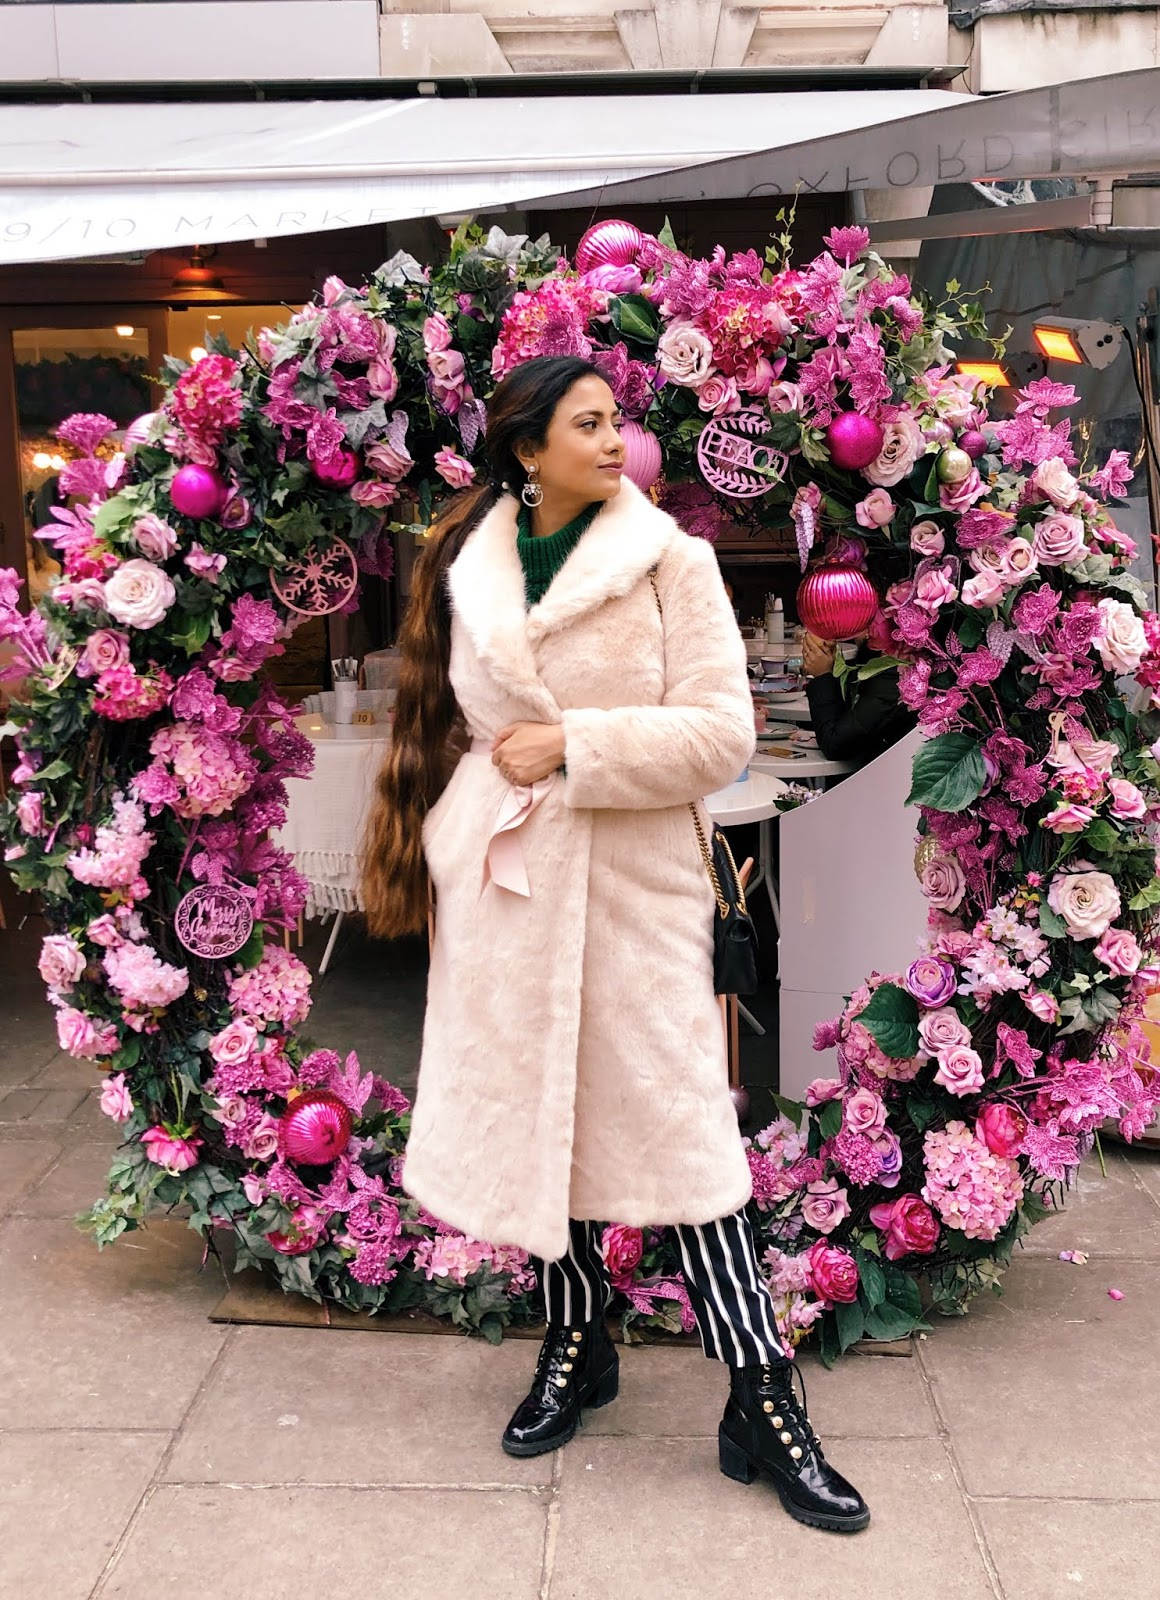 flower wall london, green jumper, élan cafe london, élan cafe market place, striped trousers, mountain boots, h&m trousers, effortless chic, london style, how to brighten winter, london blogger, indian blogger, what to wear in london, london cafe, london insta spot,